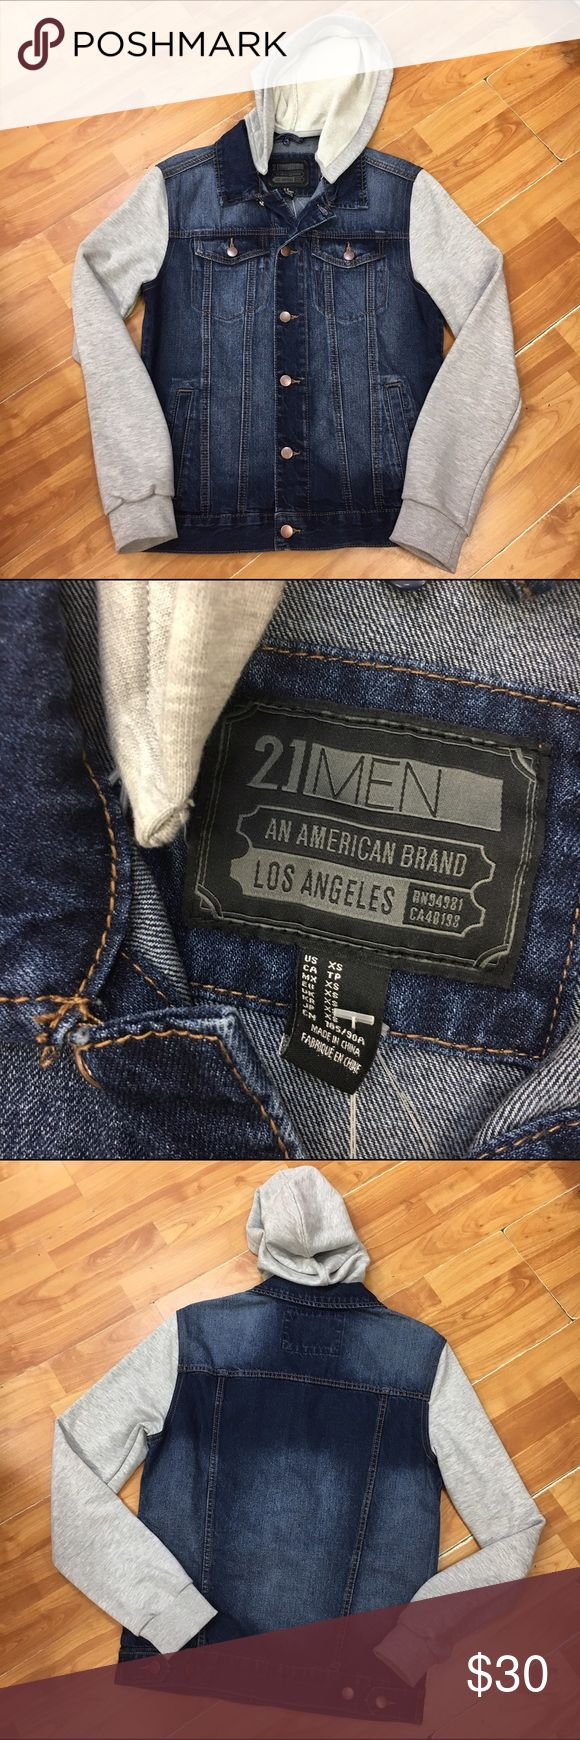 21Men Forever 21 Jean Jacket Detachable Hood NEW 21Men Forever 21 Jean Jacket Detachable Hood NEW NWT XS  New, with tags from Forever 21.  Casual jacket, denim & heather gray hood which is detachable.  #new #nwt #jacket #denim #hood #blue #jeanjacket #forever21 #21men 21men Jackets & Coats